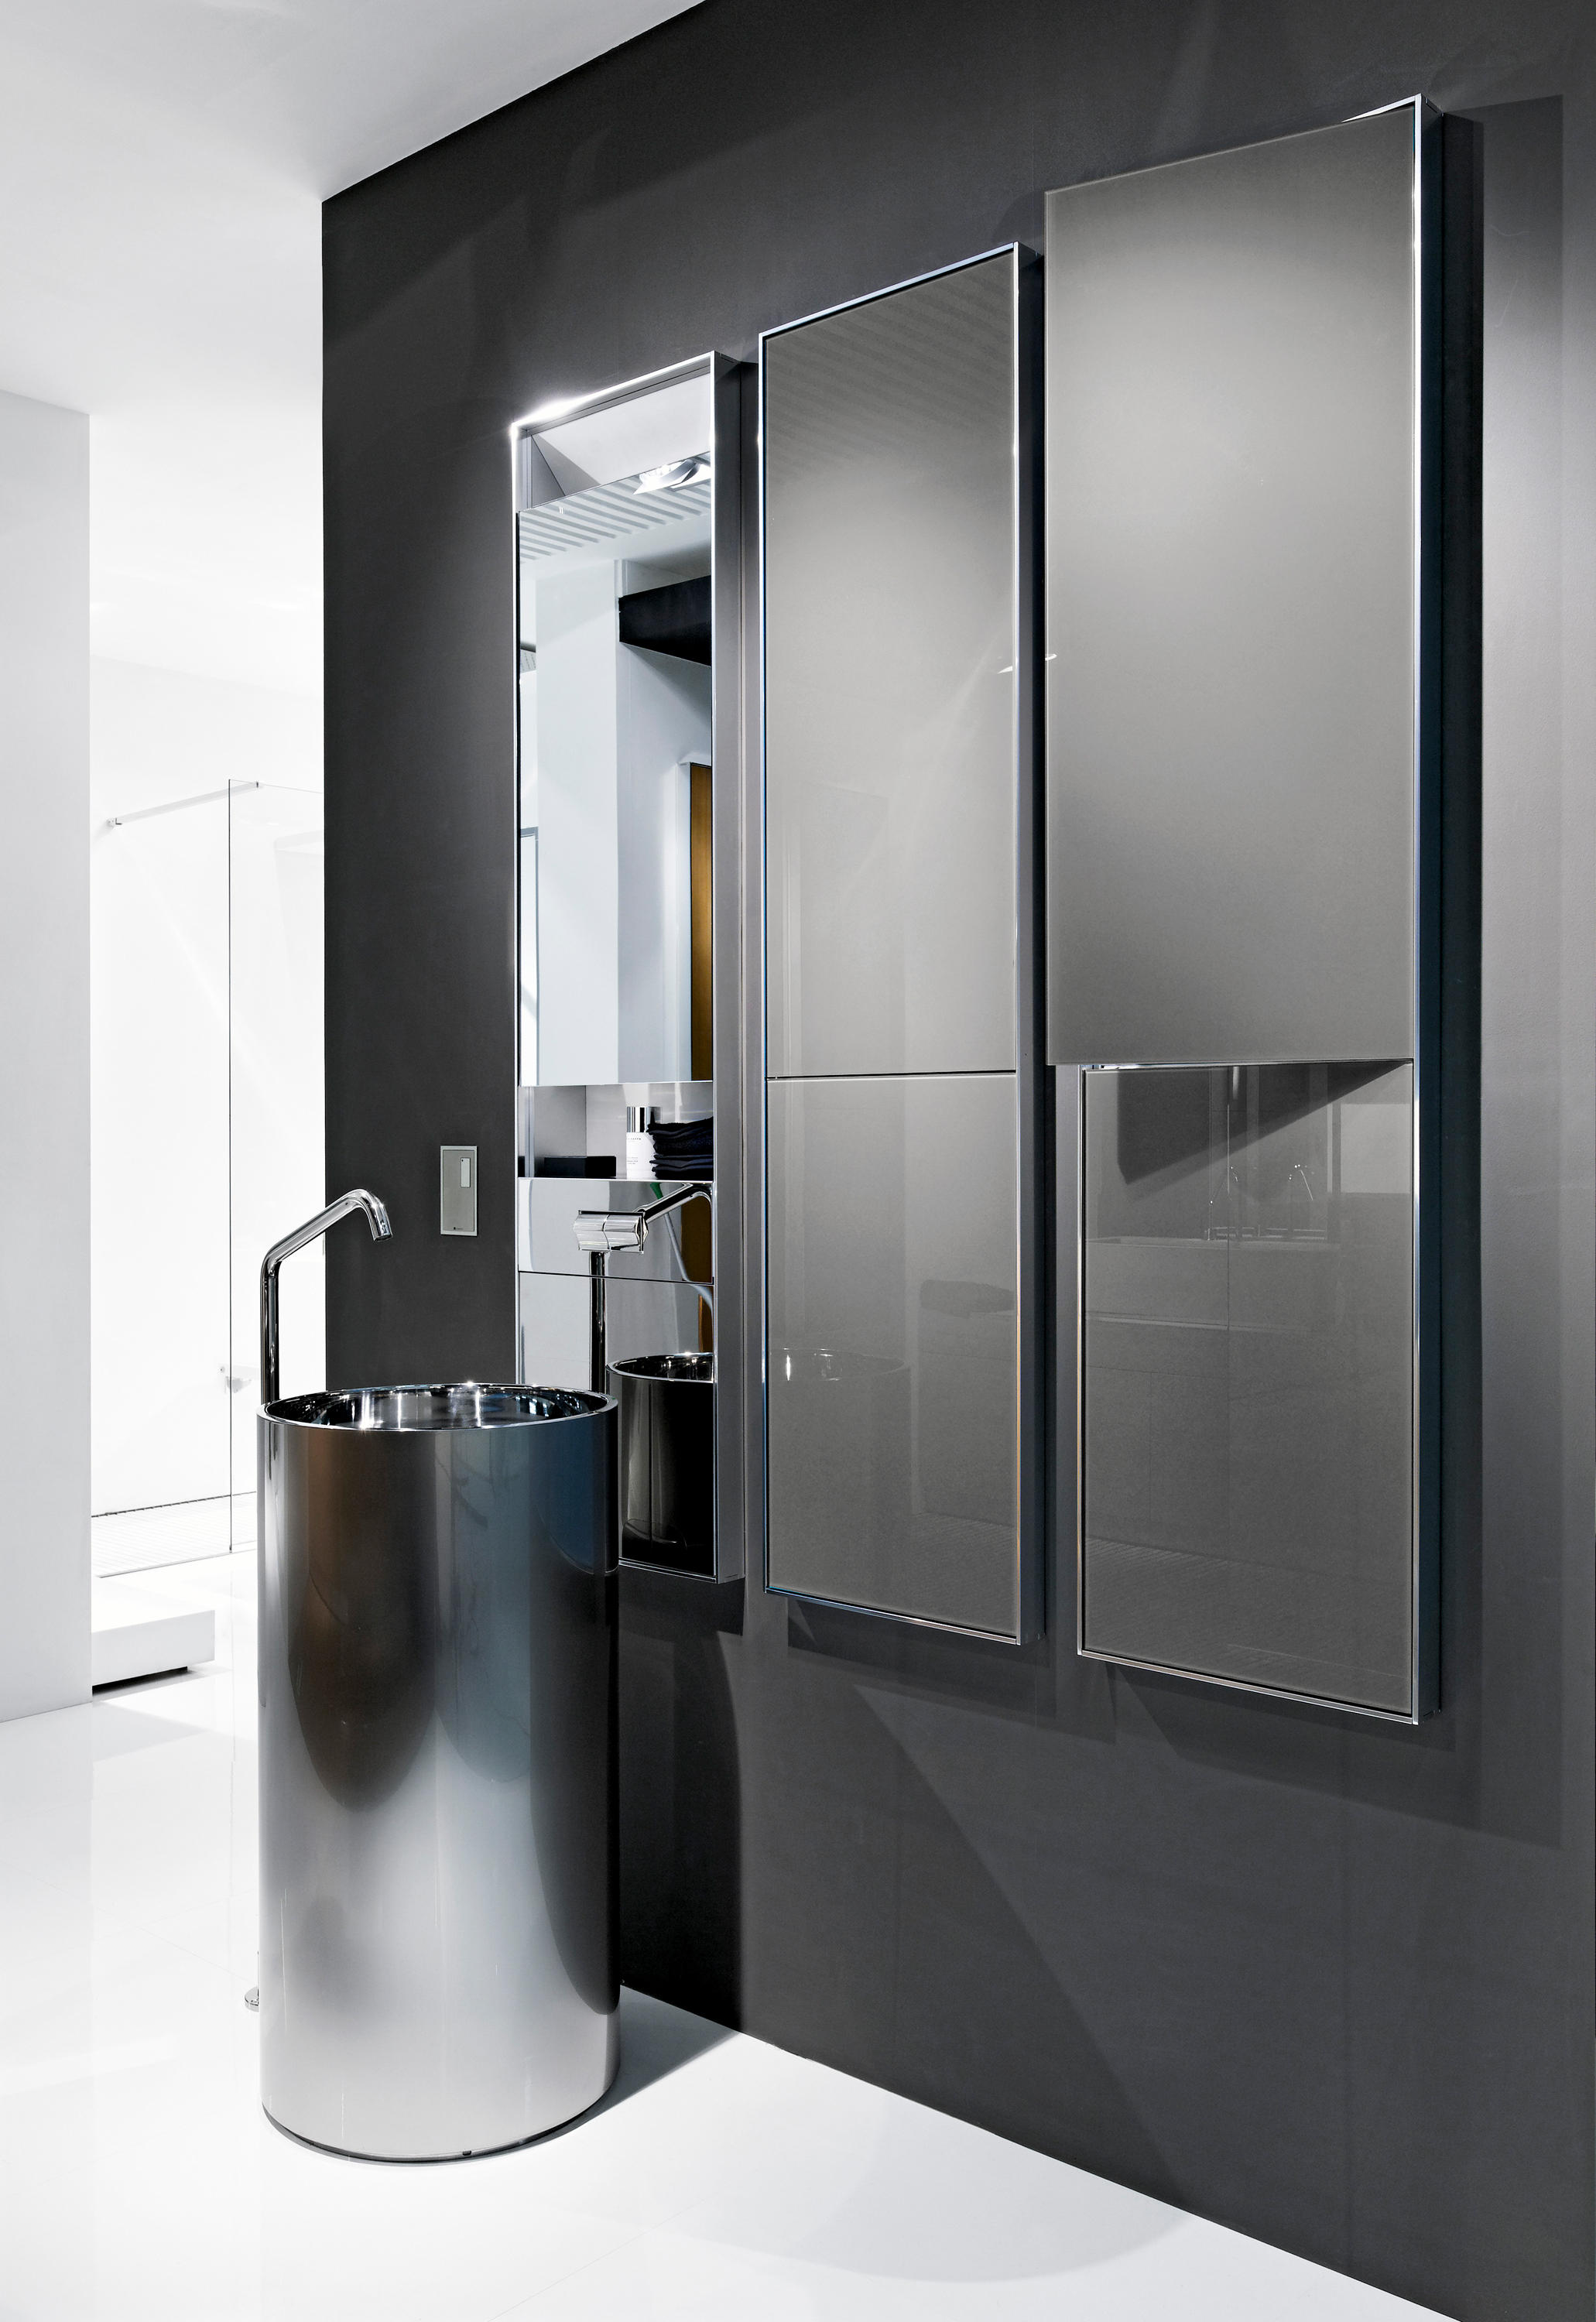 Wall wall mirror wall cabinets from makro architonic for Bathroom cabinets makro